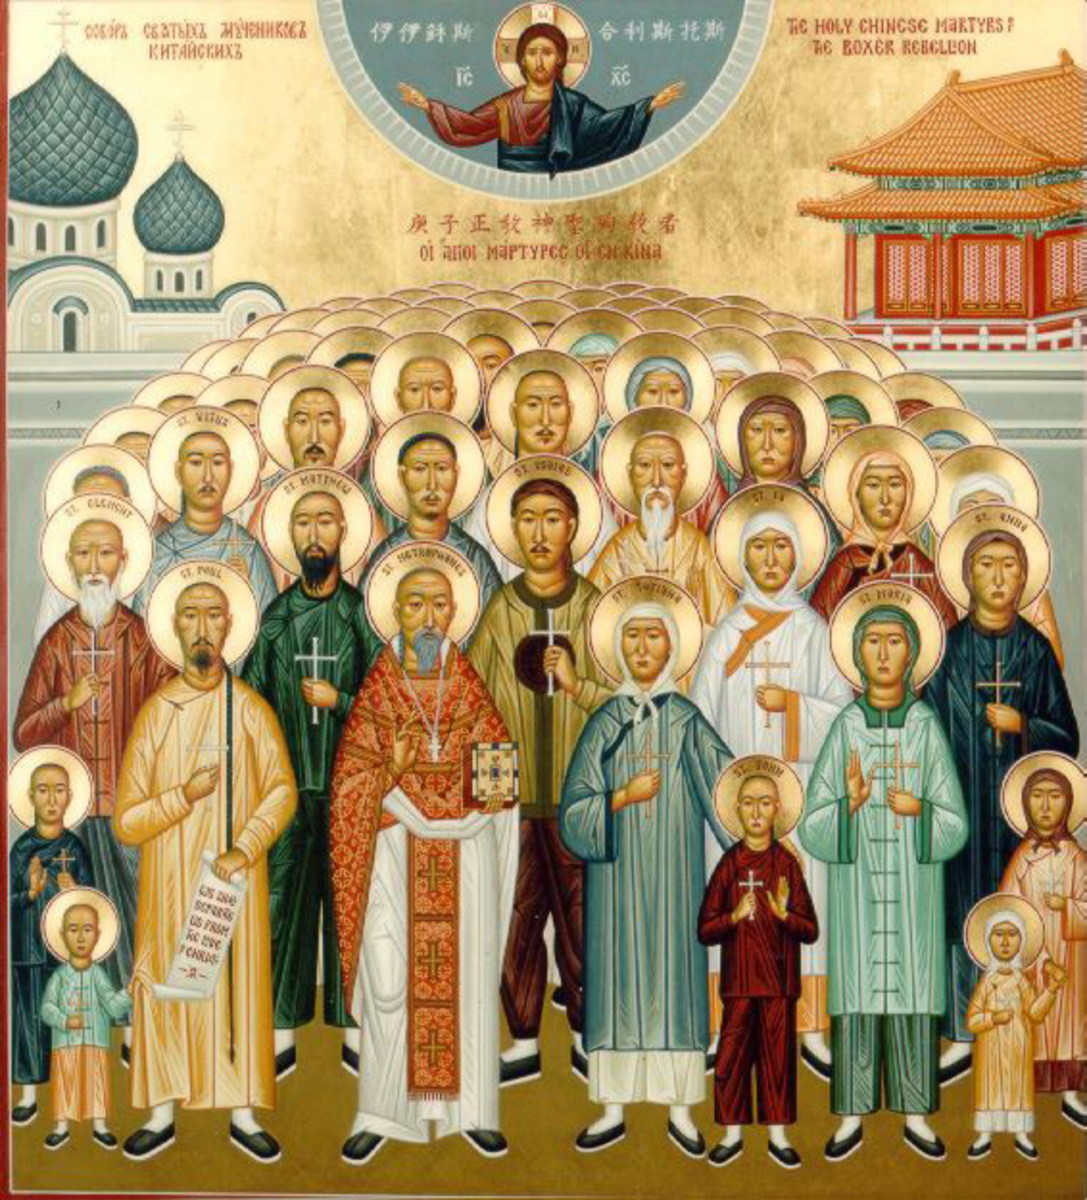 CHINESE CHRISTIAN MARTYRS OF THE BOXER REBELLION